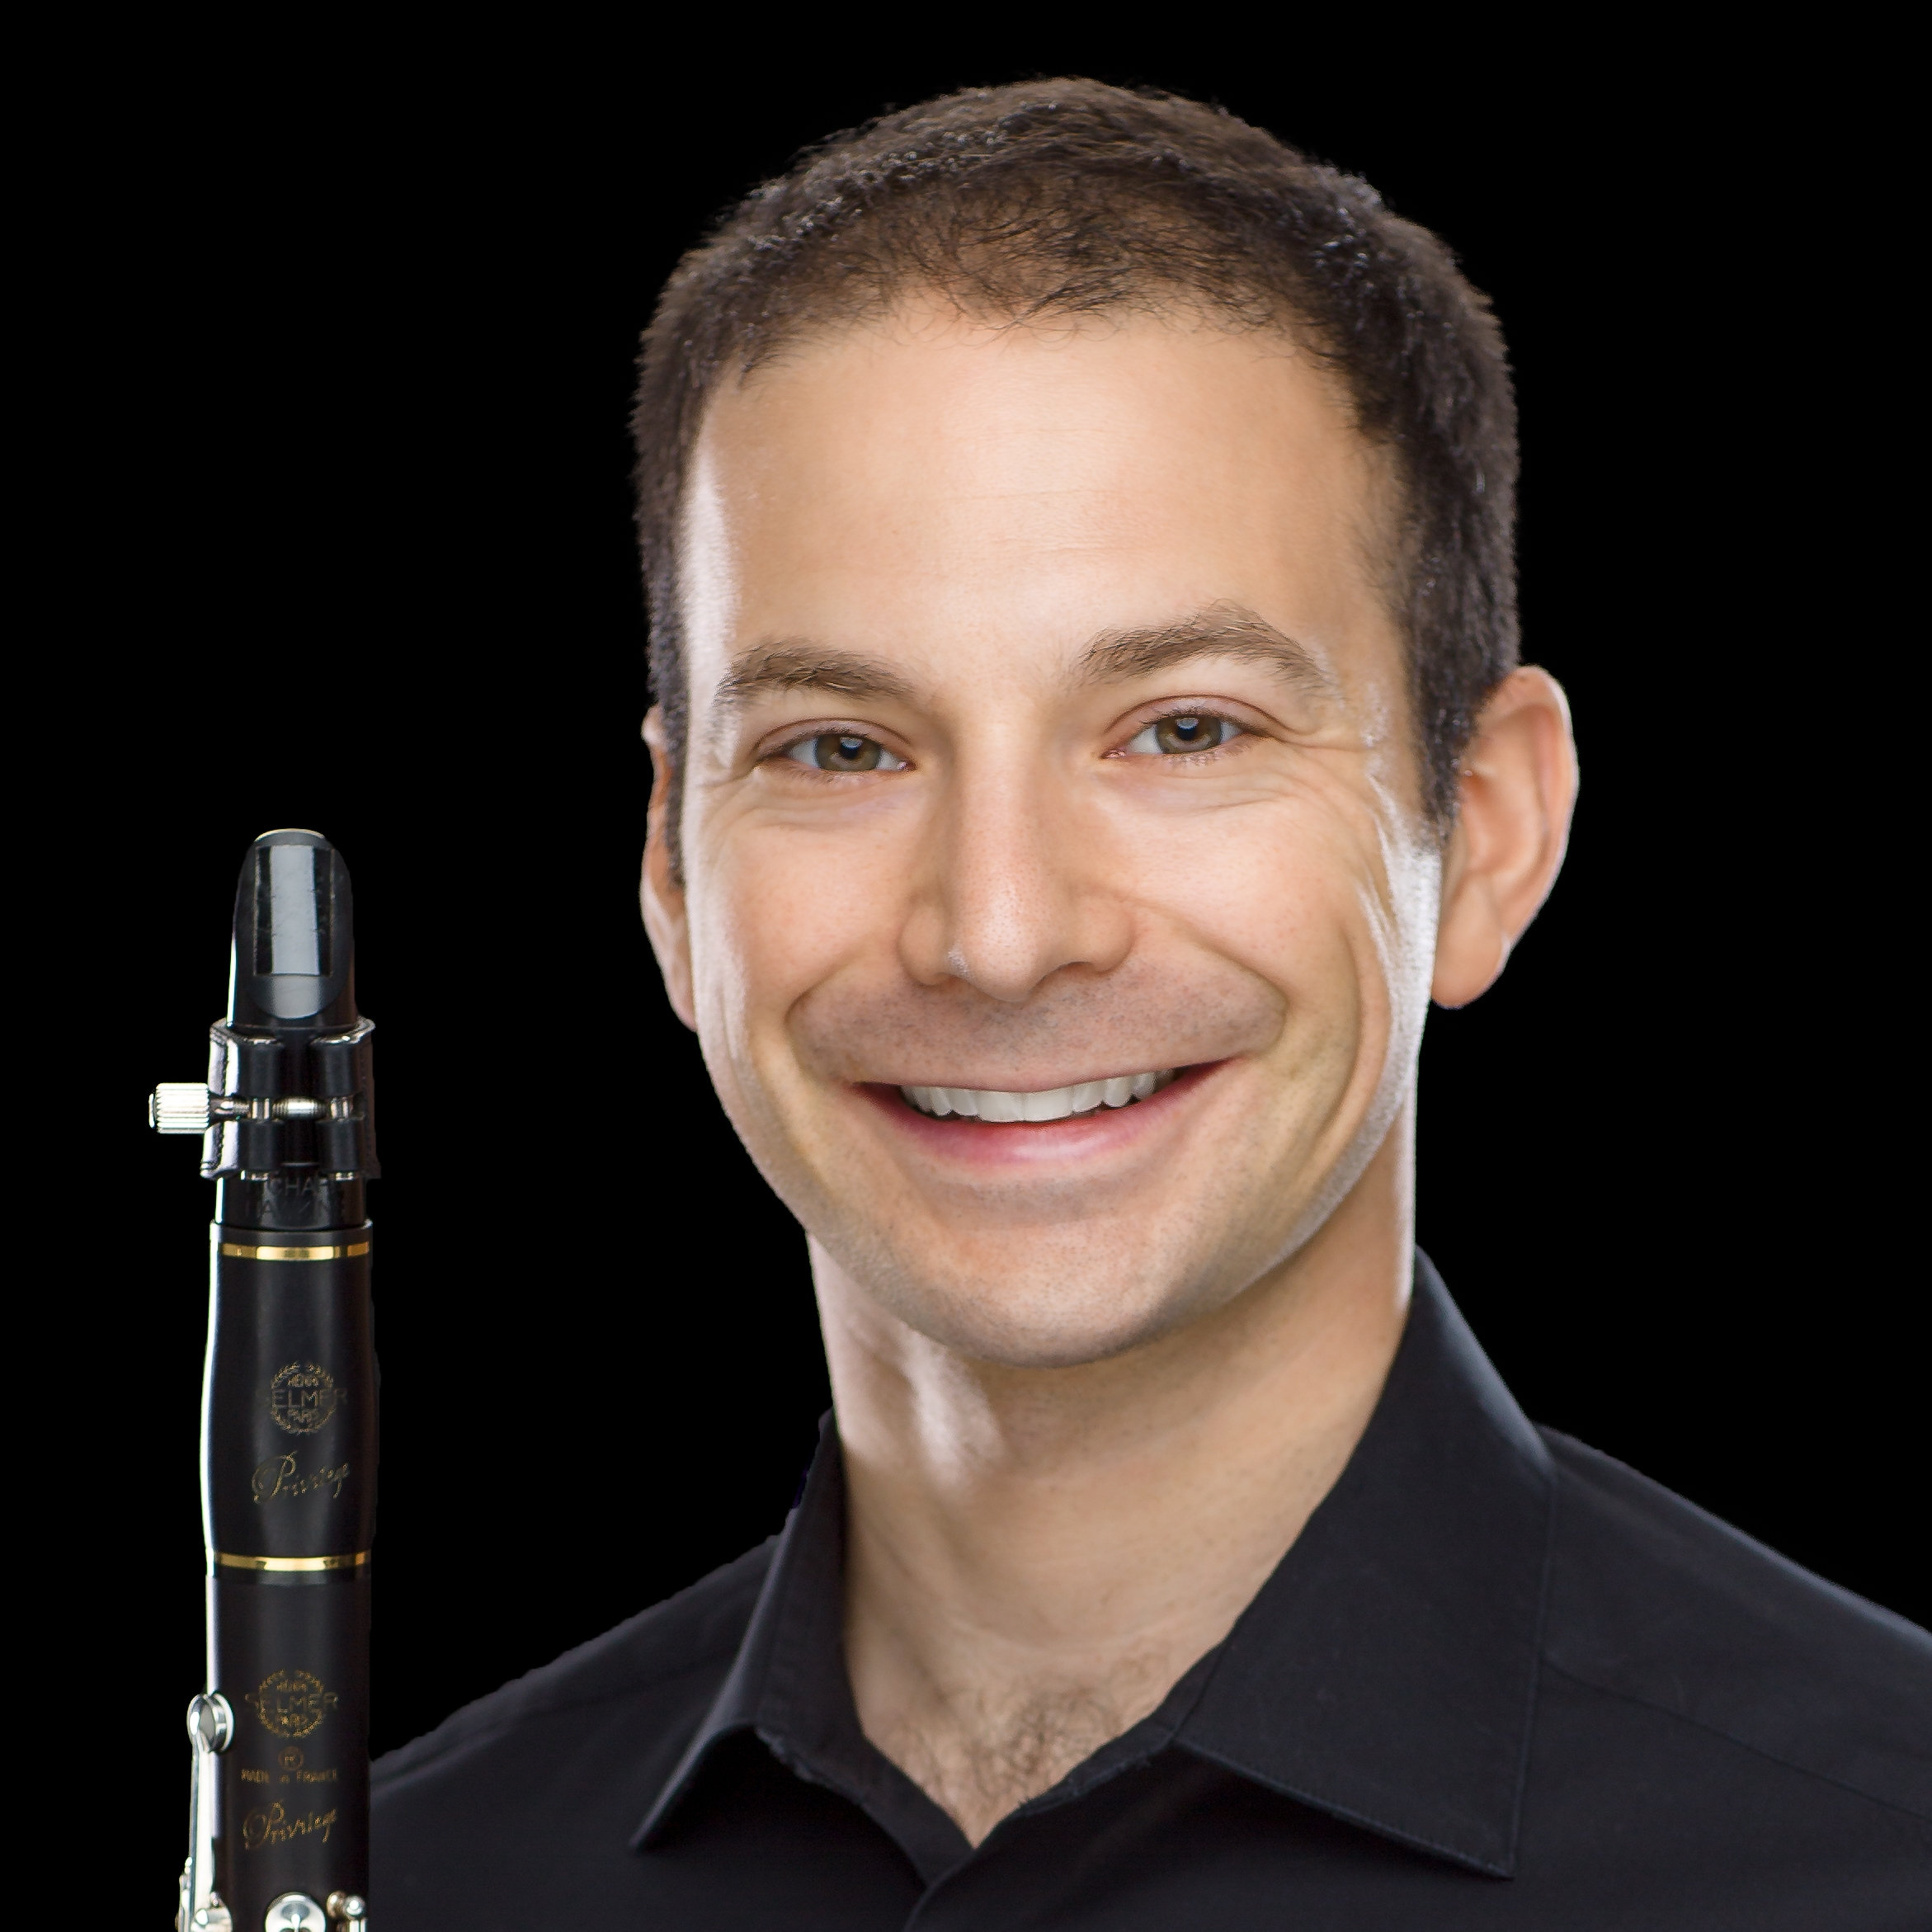 Jeremy Eig, clarinet   Musician 1st Class Jeremy Eig joined the Navy Band in July 2012. An accomplished chamber musician, he has won prizes at the Fischoff, Coleman, and Yellow Springs competitions, and performed with pianist Claude Frank at the New School's Schneider Concert Series. Eig's chamber music concerts have been heard in Weill Recital Hall at Carnegie Hall, Merkin Hall, and the Kennedy Center's Millenium Stage.  As an educator, he has given masterclasses at Davidson College, Furman University, and Grand Valley State University, and served as a teaching assistant at Yale and Stony Brook Universities. An active orchestral musician, Eig has performed with the Cleveland Orchestra and Kansas City Symphony and in such halls as Carnegie Hall, Seoul Arts Center, Shanghai Grand Theatre, and the National Center for the Performing Arts in Beijing. Eig has also participated in music festivals at Norfolk, the Banff Centre, Kent/Blossom, the National Orchestral Institute and Bang on a Can.